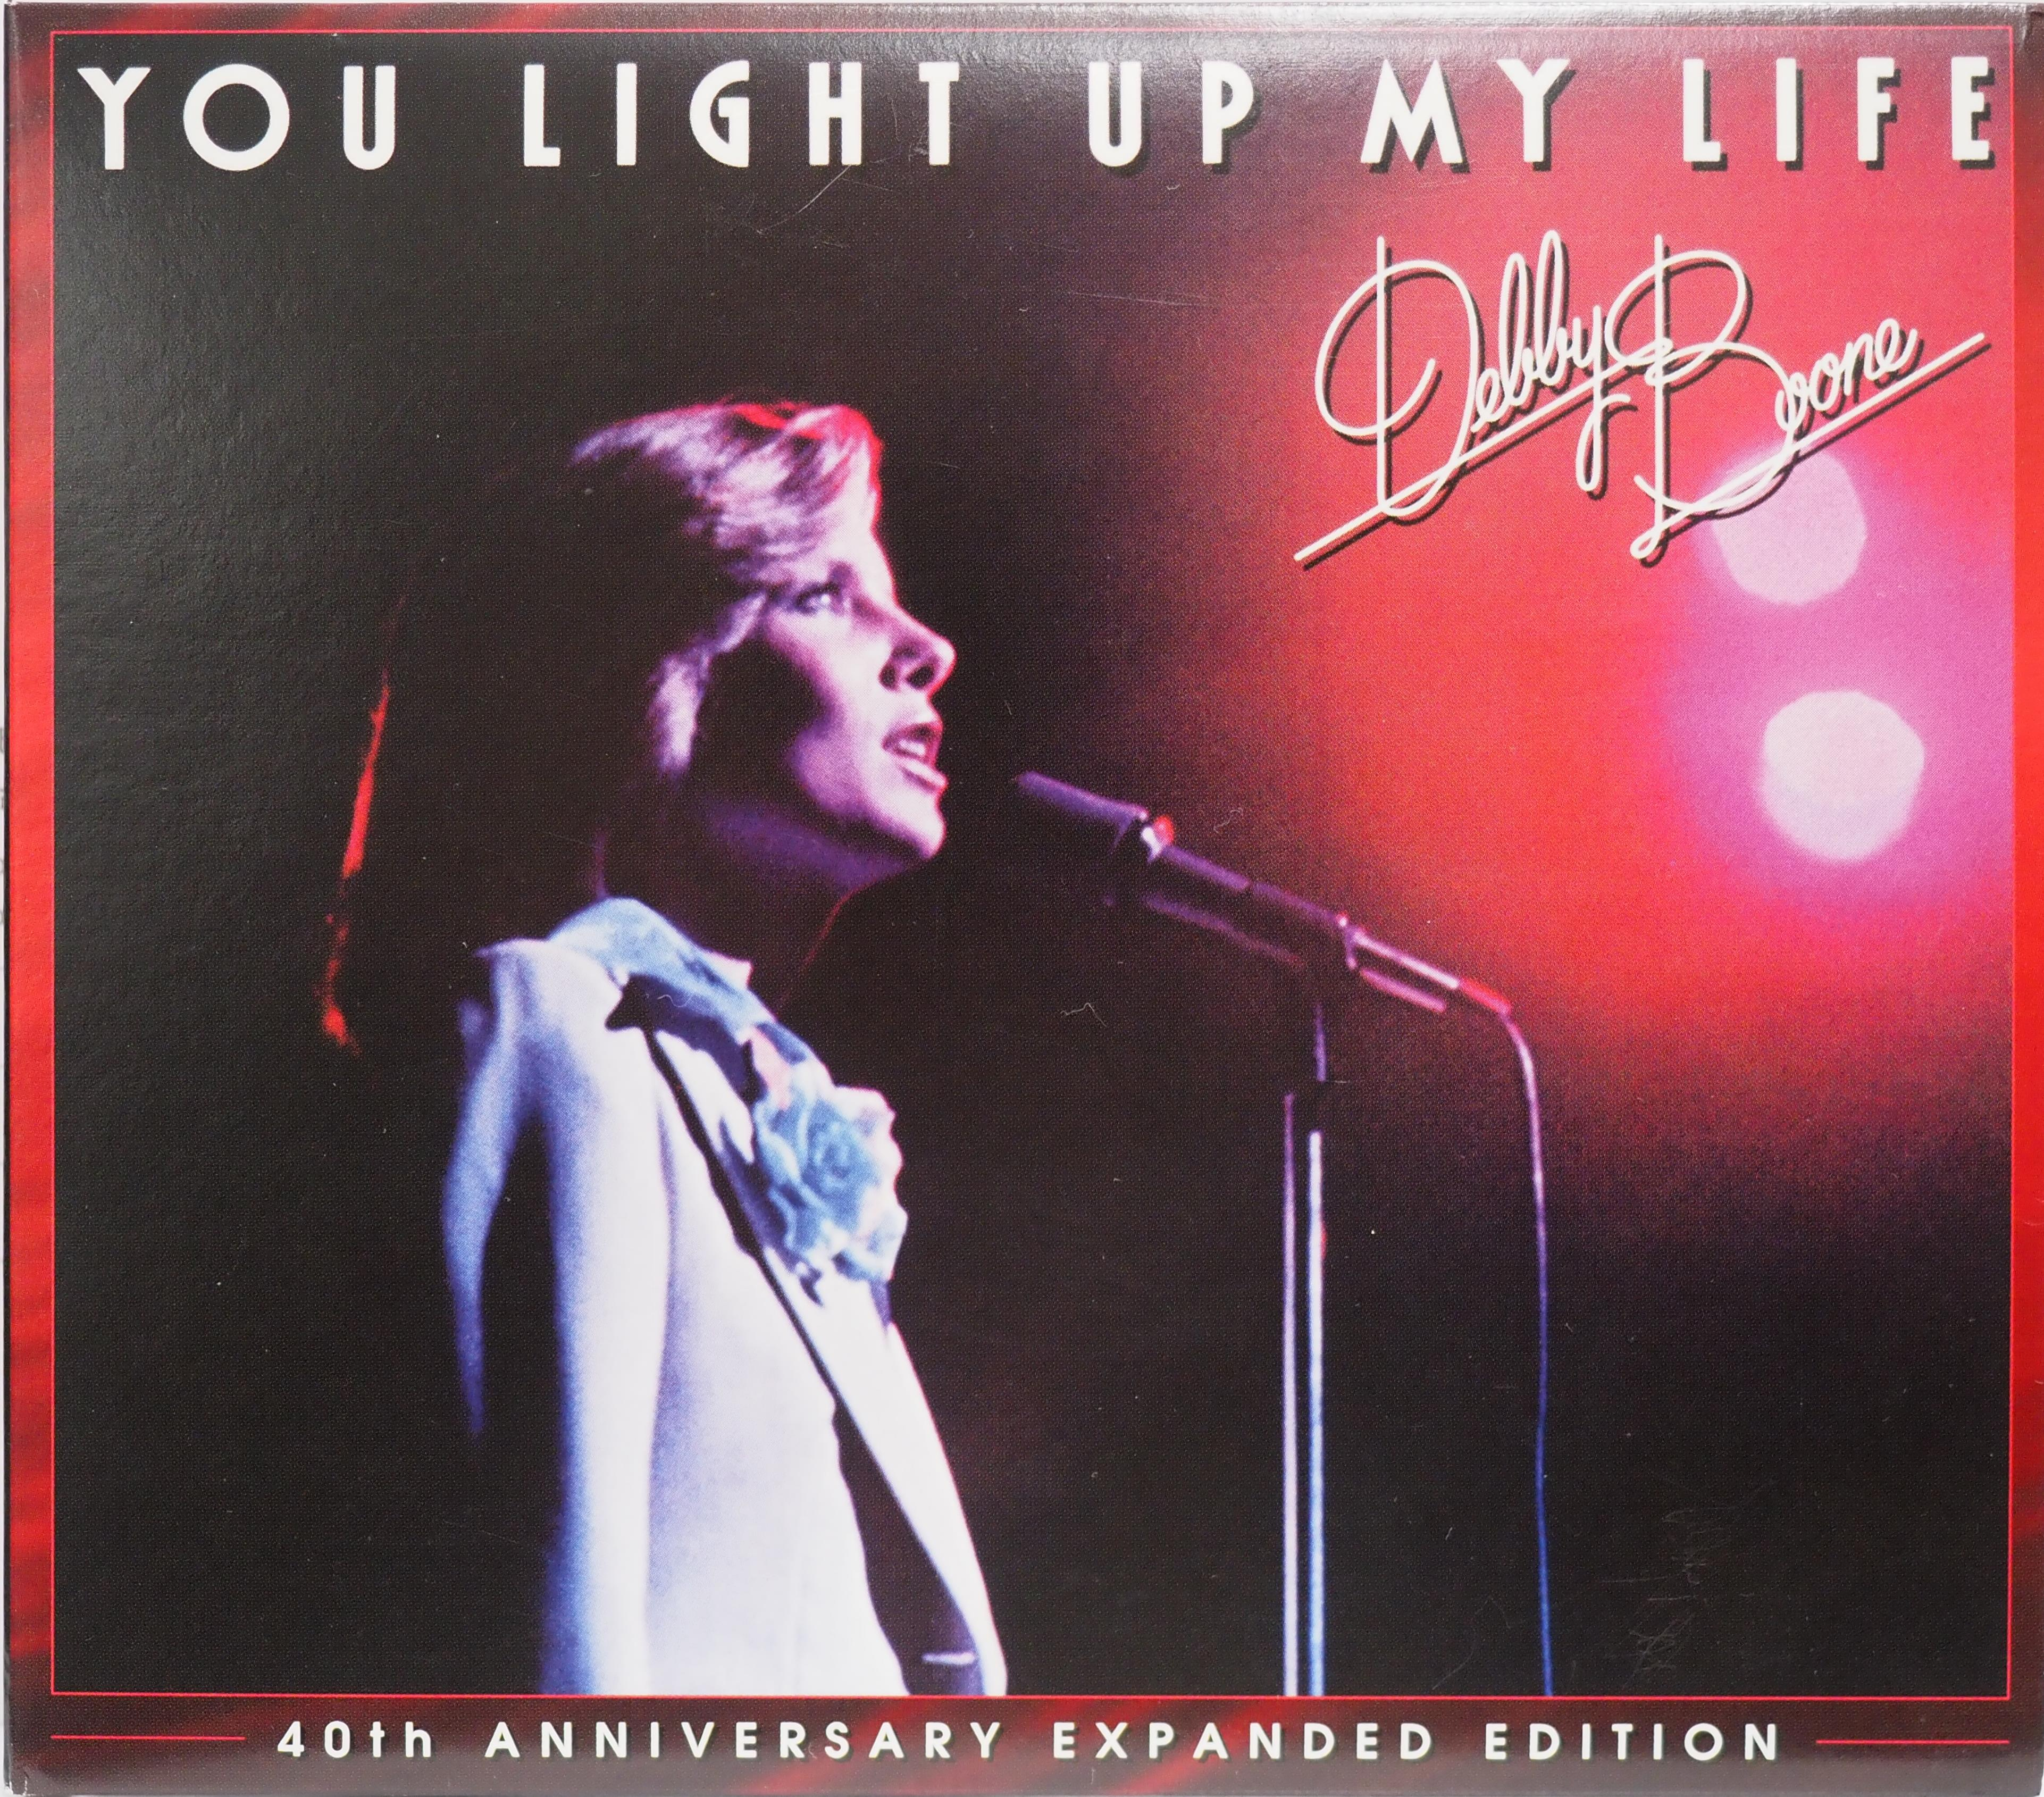 『YOU LIGHT UP MY LIFE (40TH ANNIVERSARY EXPANDED EDITION)/デビー・ブーン』(輸入盤)